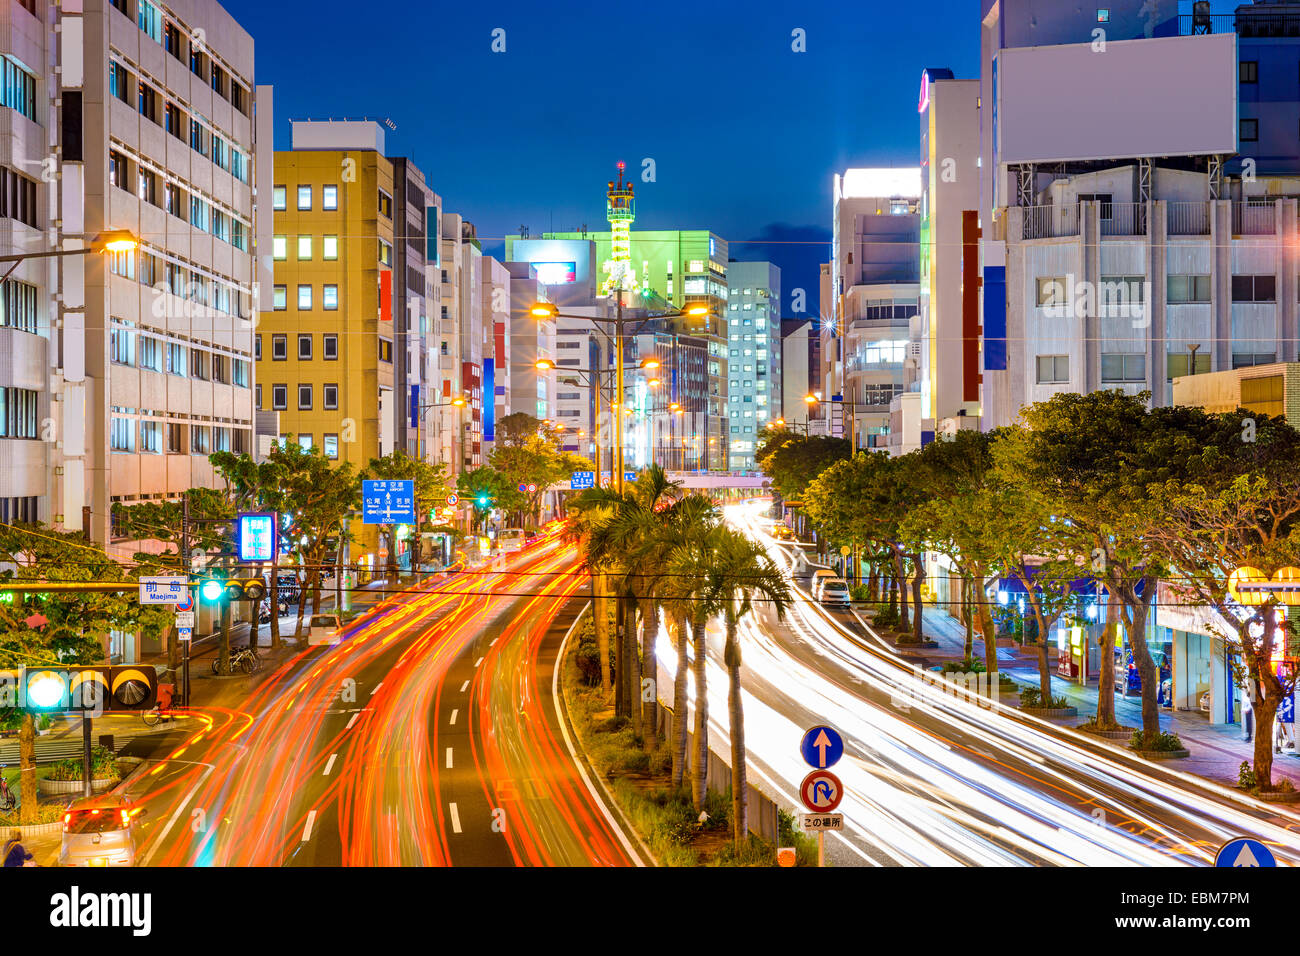 Naha, Okinawa, Japan downtown cityscape over the expressway. - Stock Image